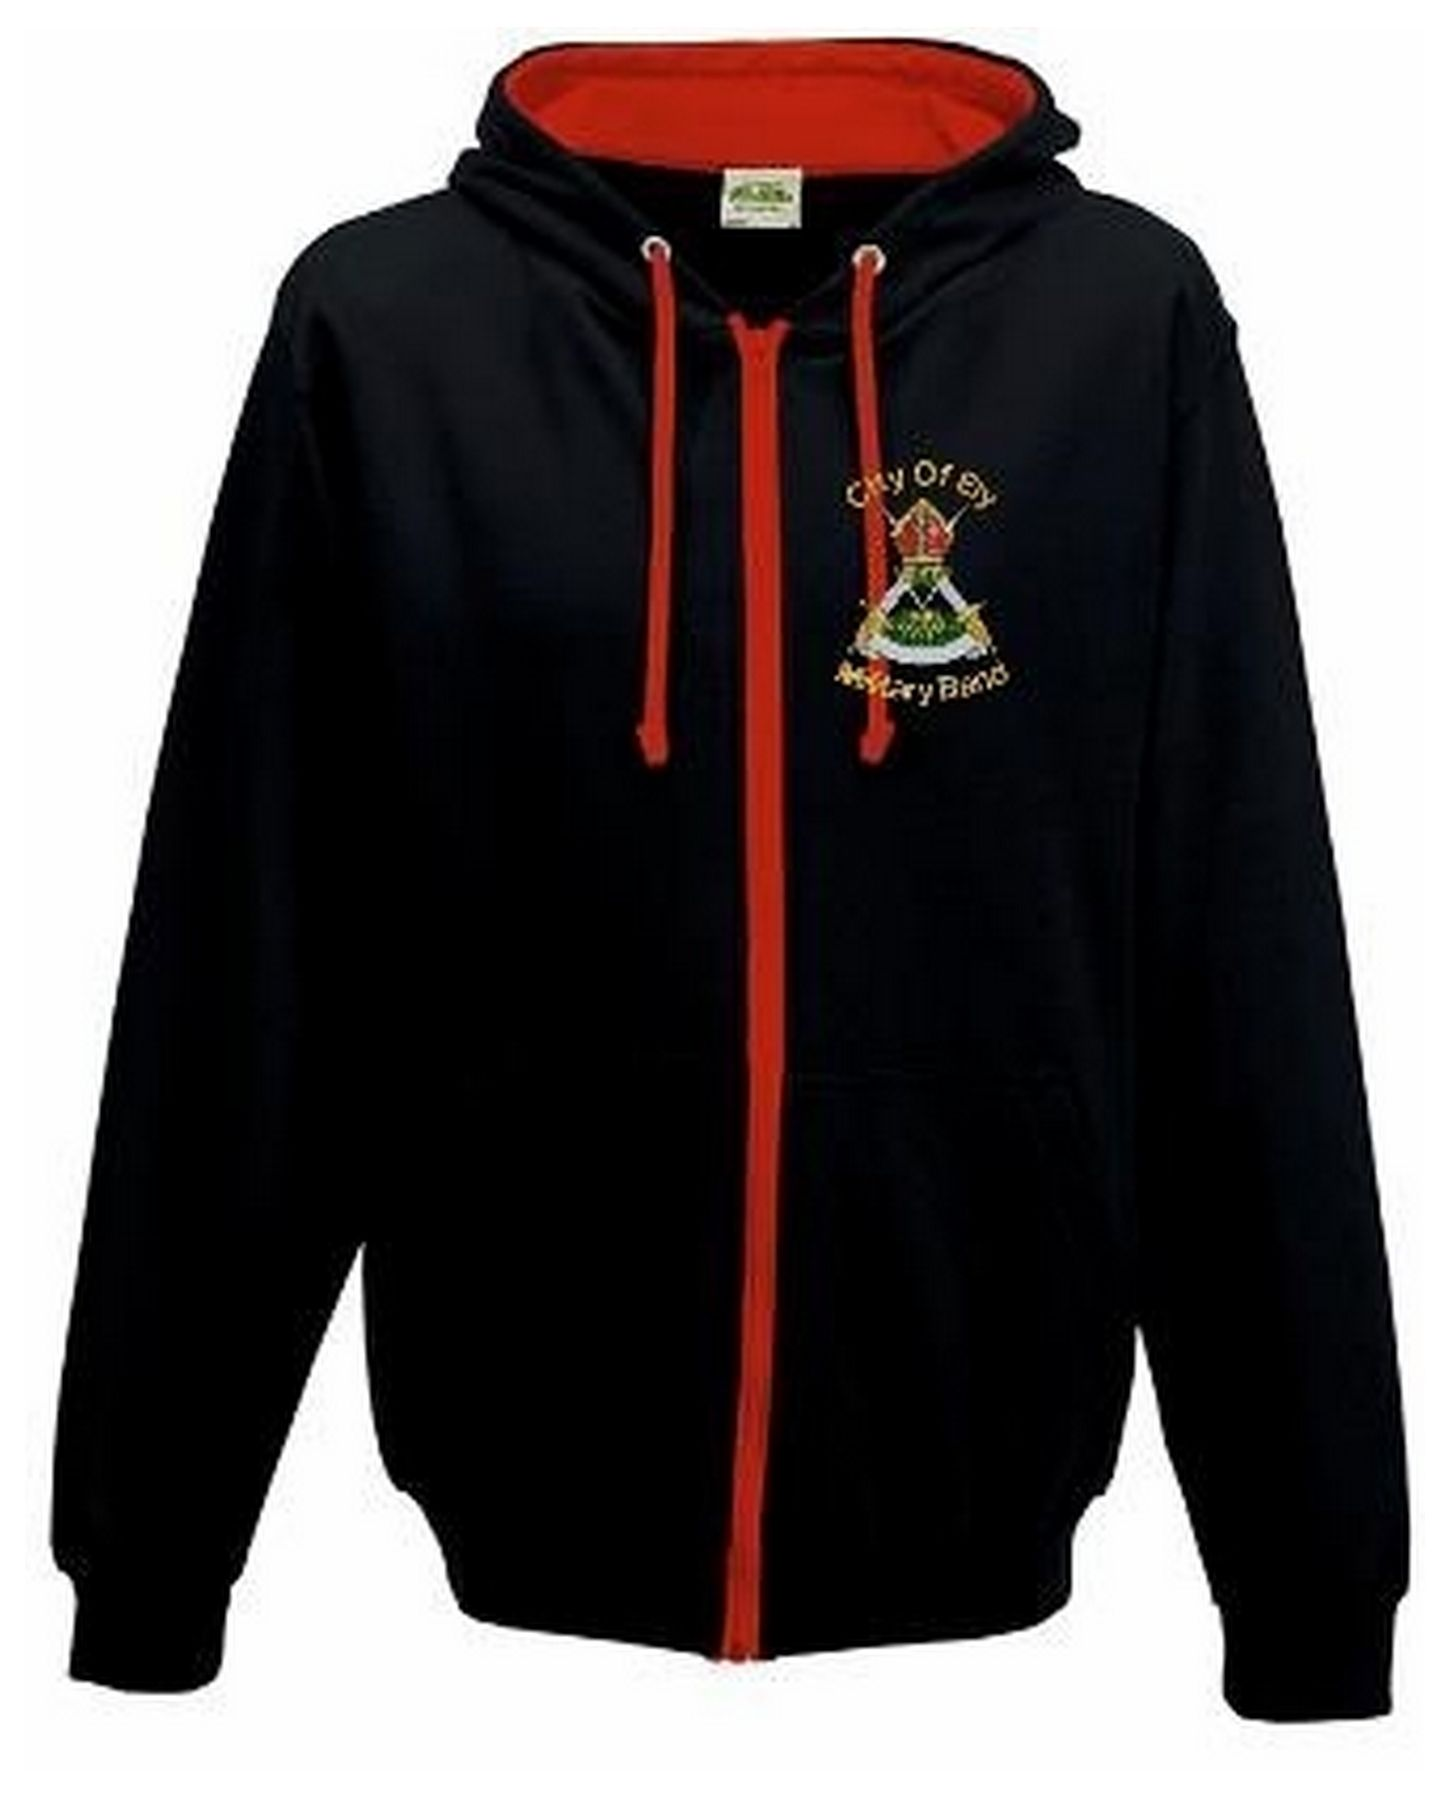 Ely Military Band – Hoodie Zipped